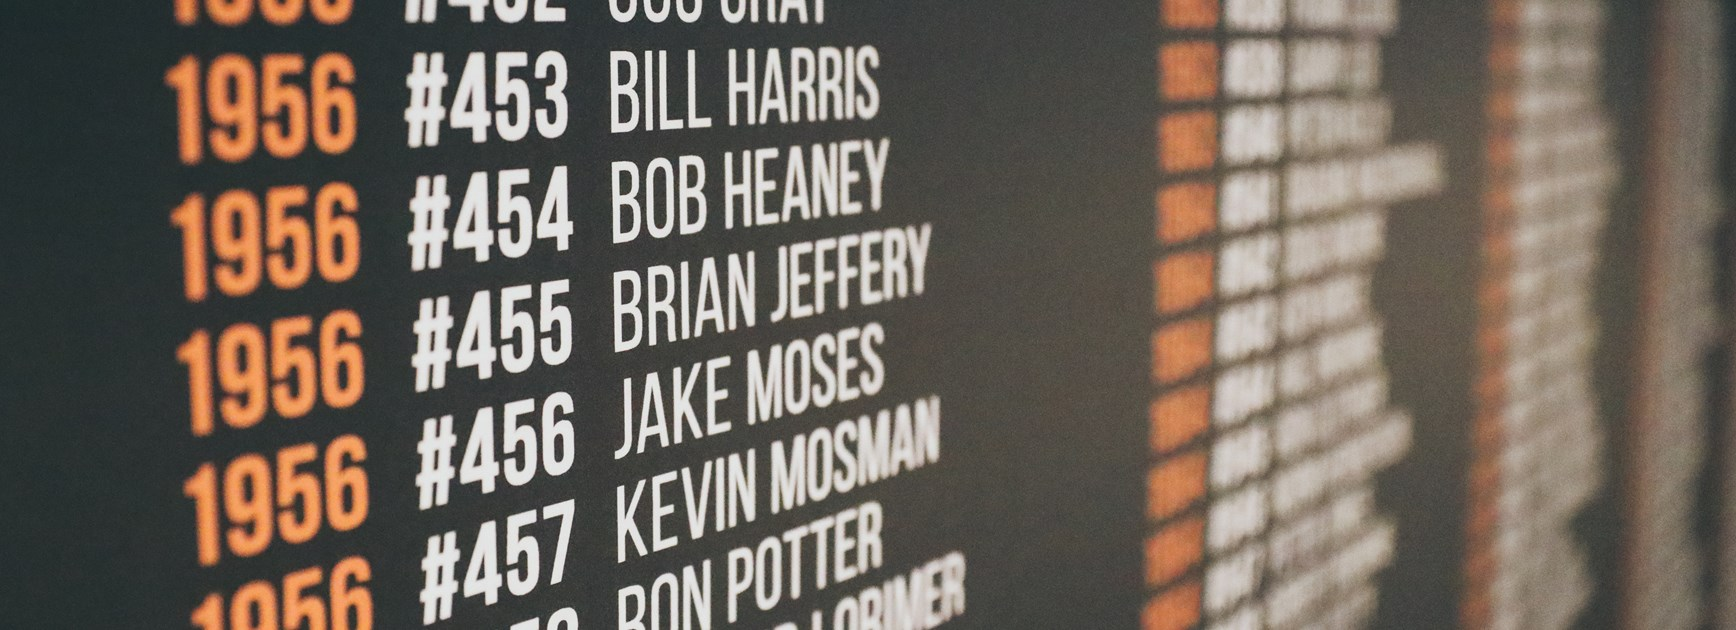 Balmain Tigers Player #454 Bob Heaney on the honours wall at Wests Tigers.